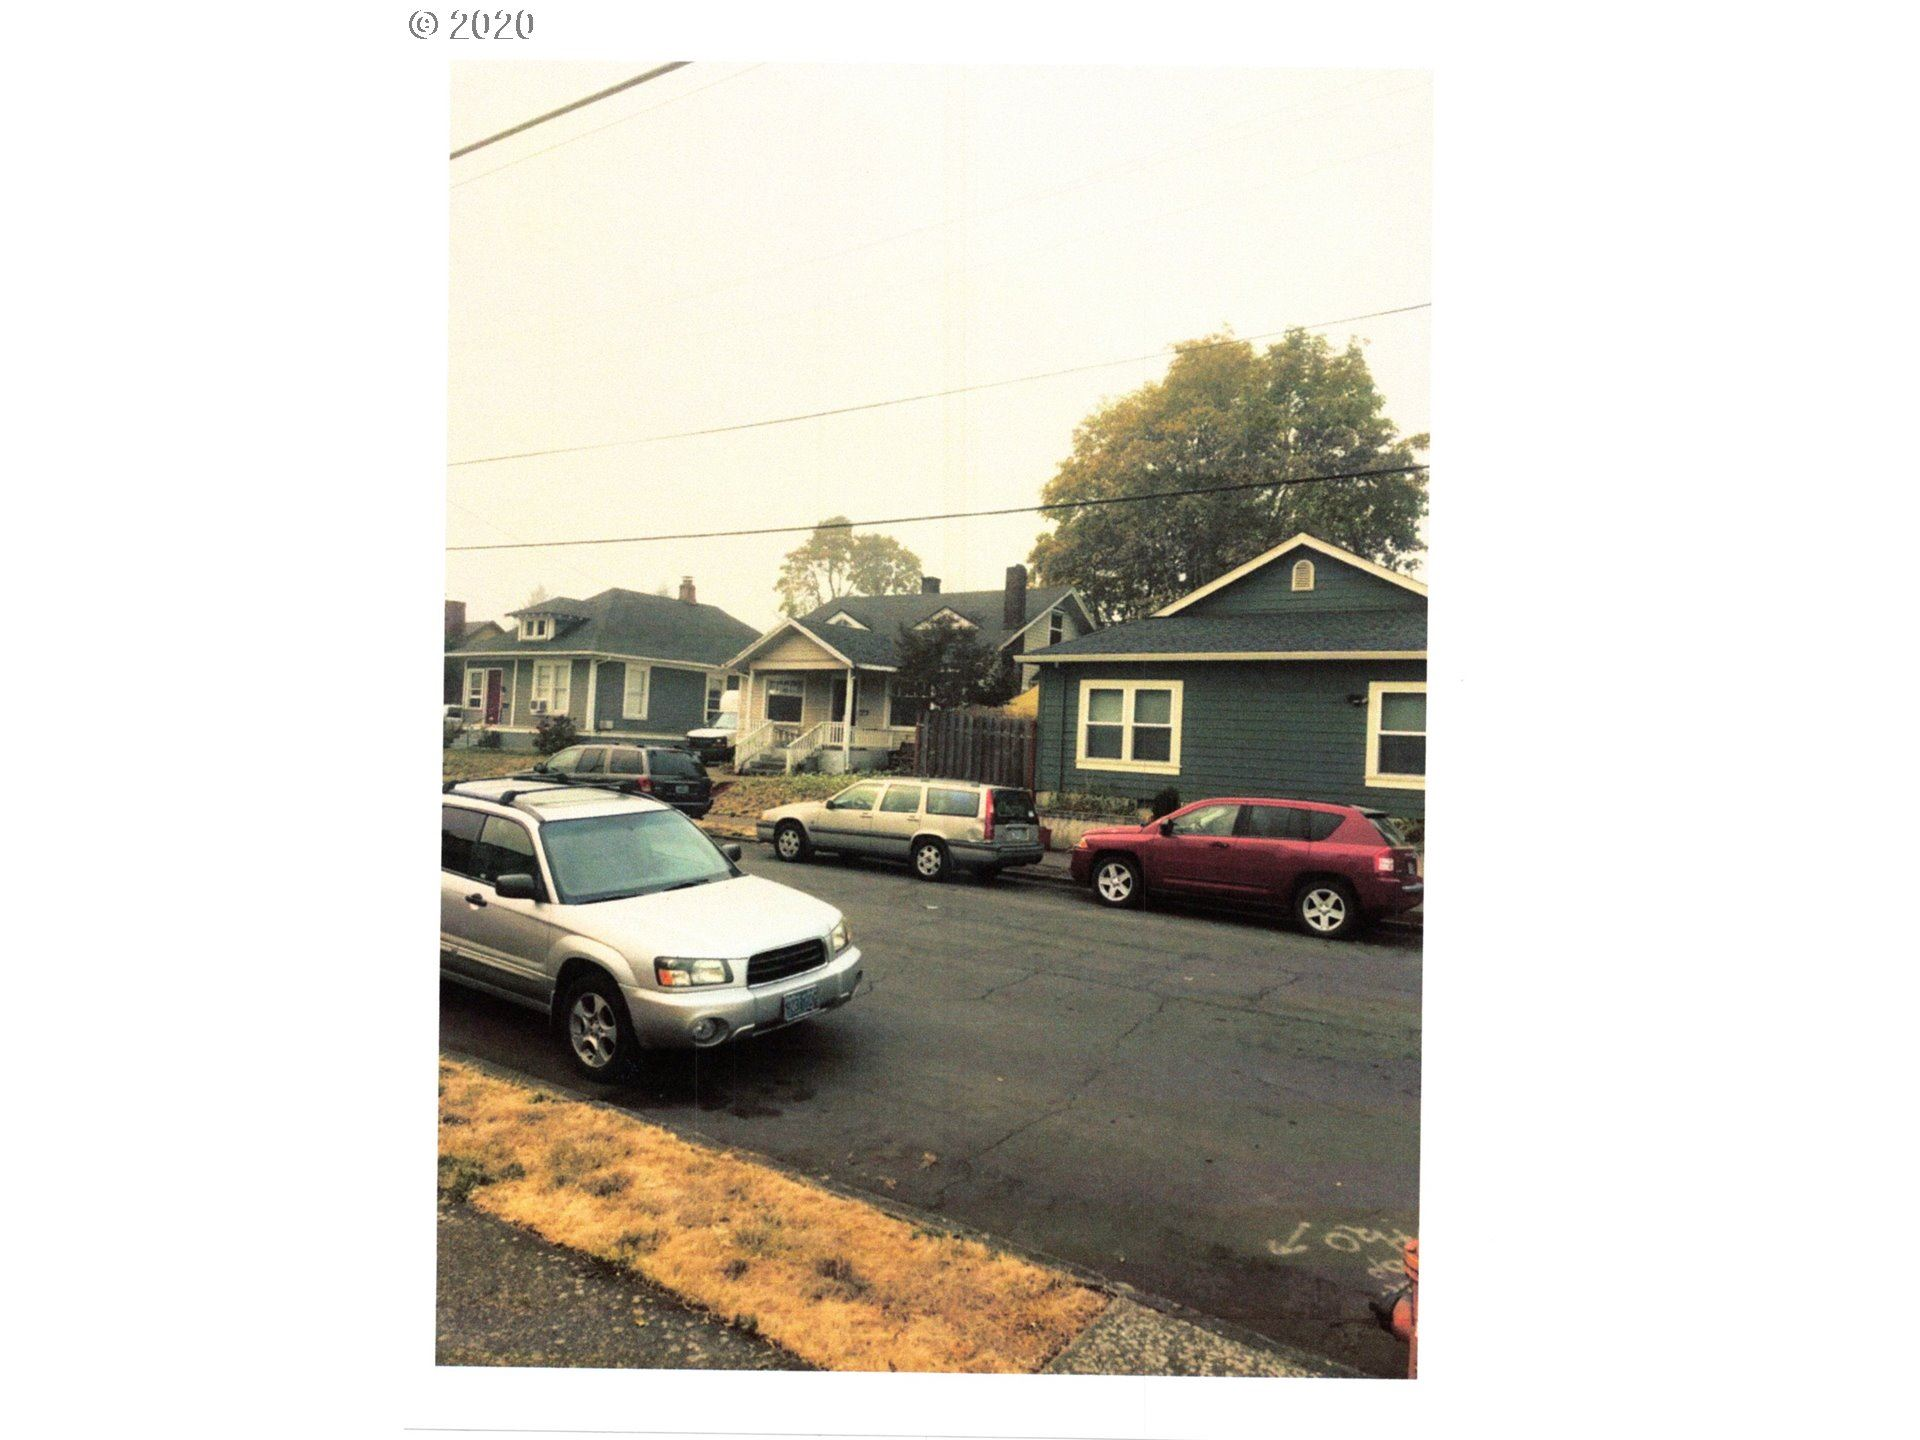 13 SE 80TH AVE, Portland, OR 97215 - MLS#: 20621490